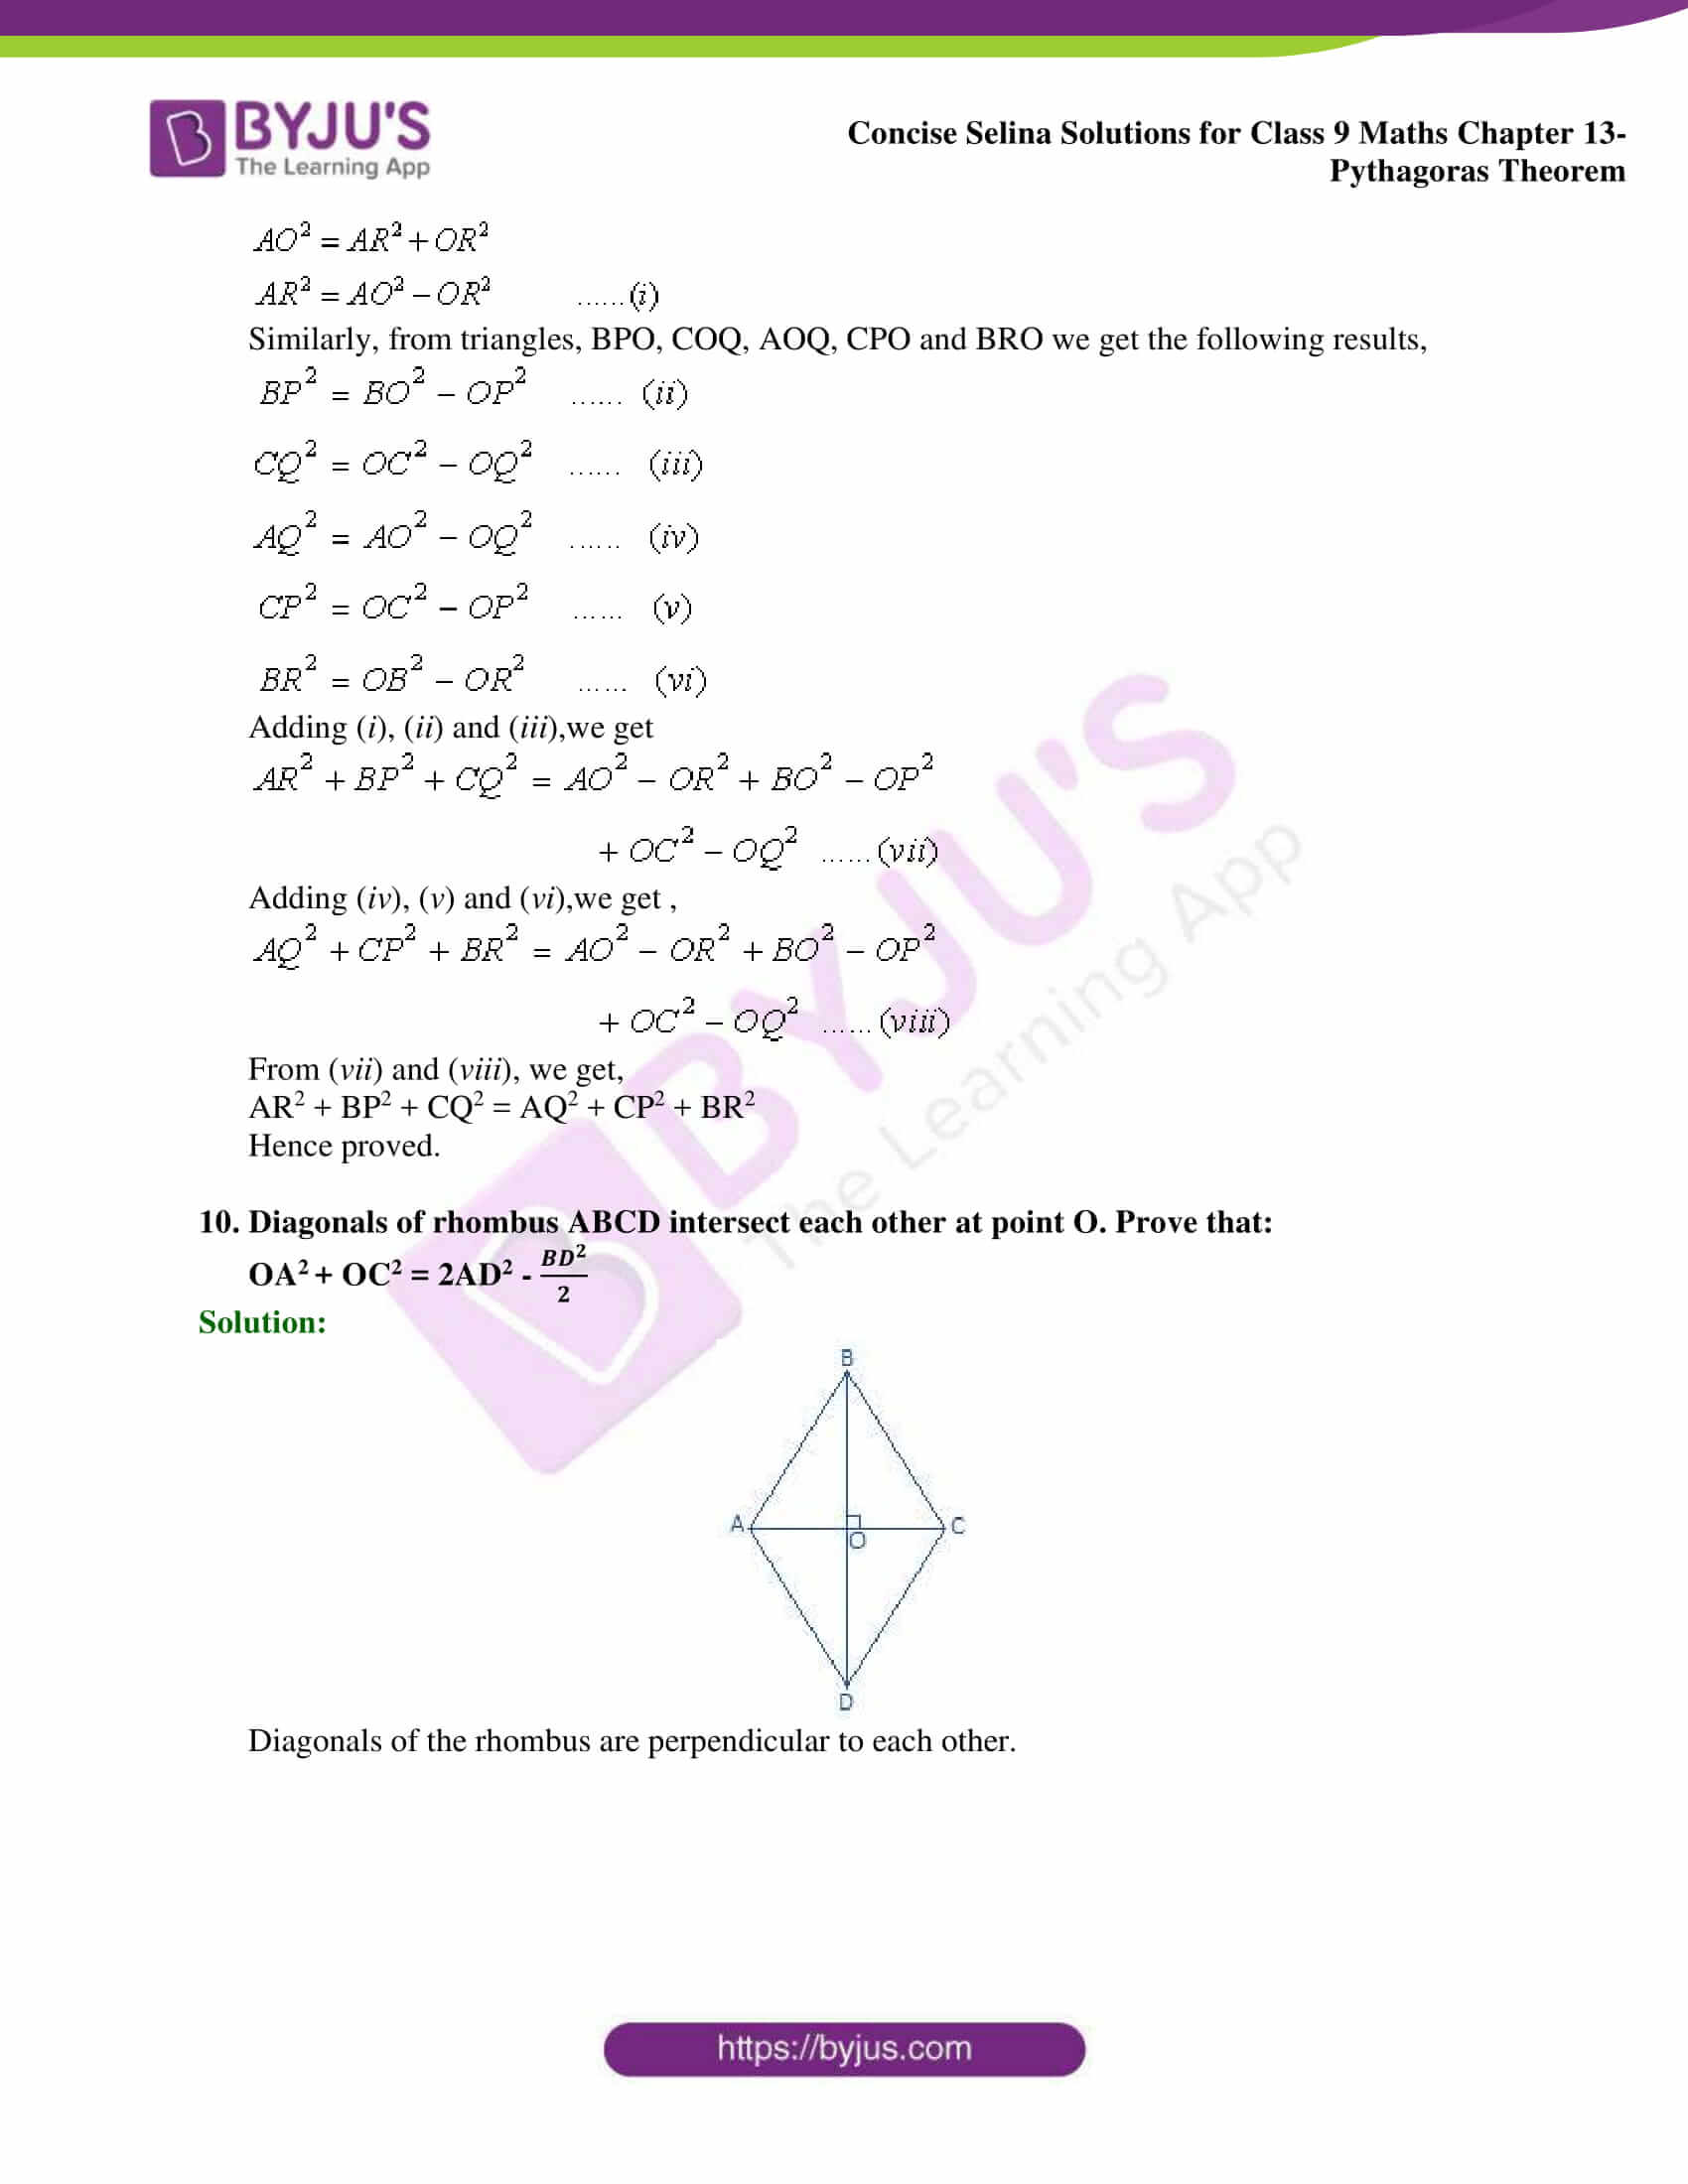 selina Solutions for Class 9 Maths Chapter 13 part 18